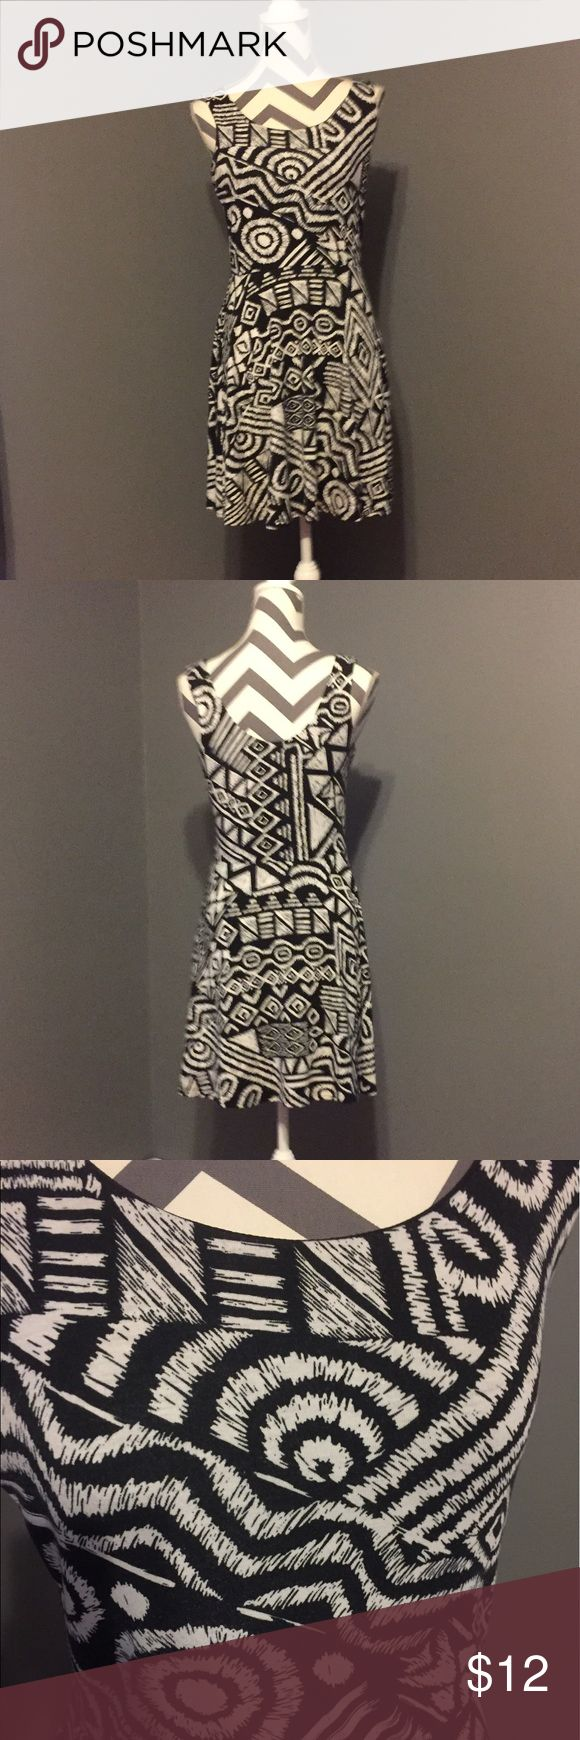 Geometric black & white dress Slight fit & flair. Fun sleeveless dress, can be dressed up or down. I usually put on a chunk black belt at the waist or a bit higher. From Nordstrom Rack. 95% polyester, 5% spandex gives it a fitted and stretchy feel. love...ady Dresses Mini